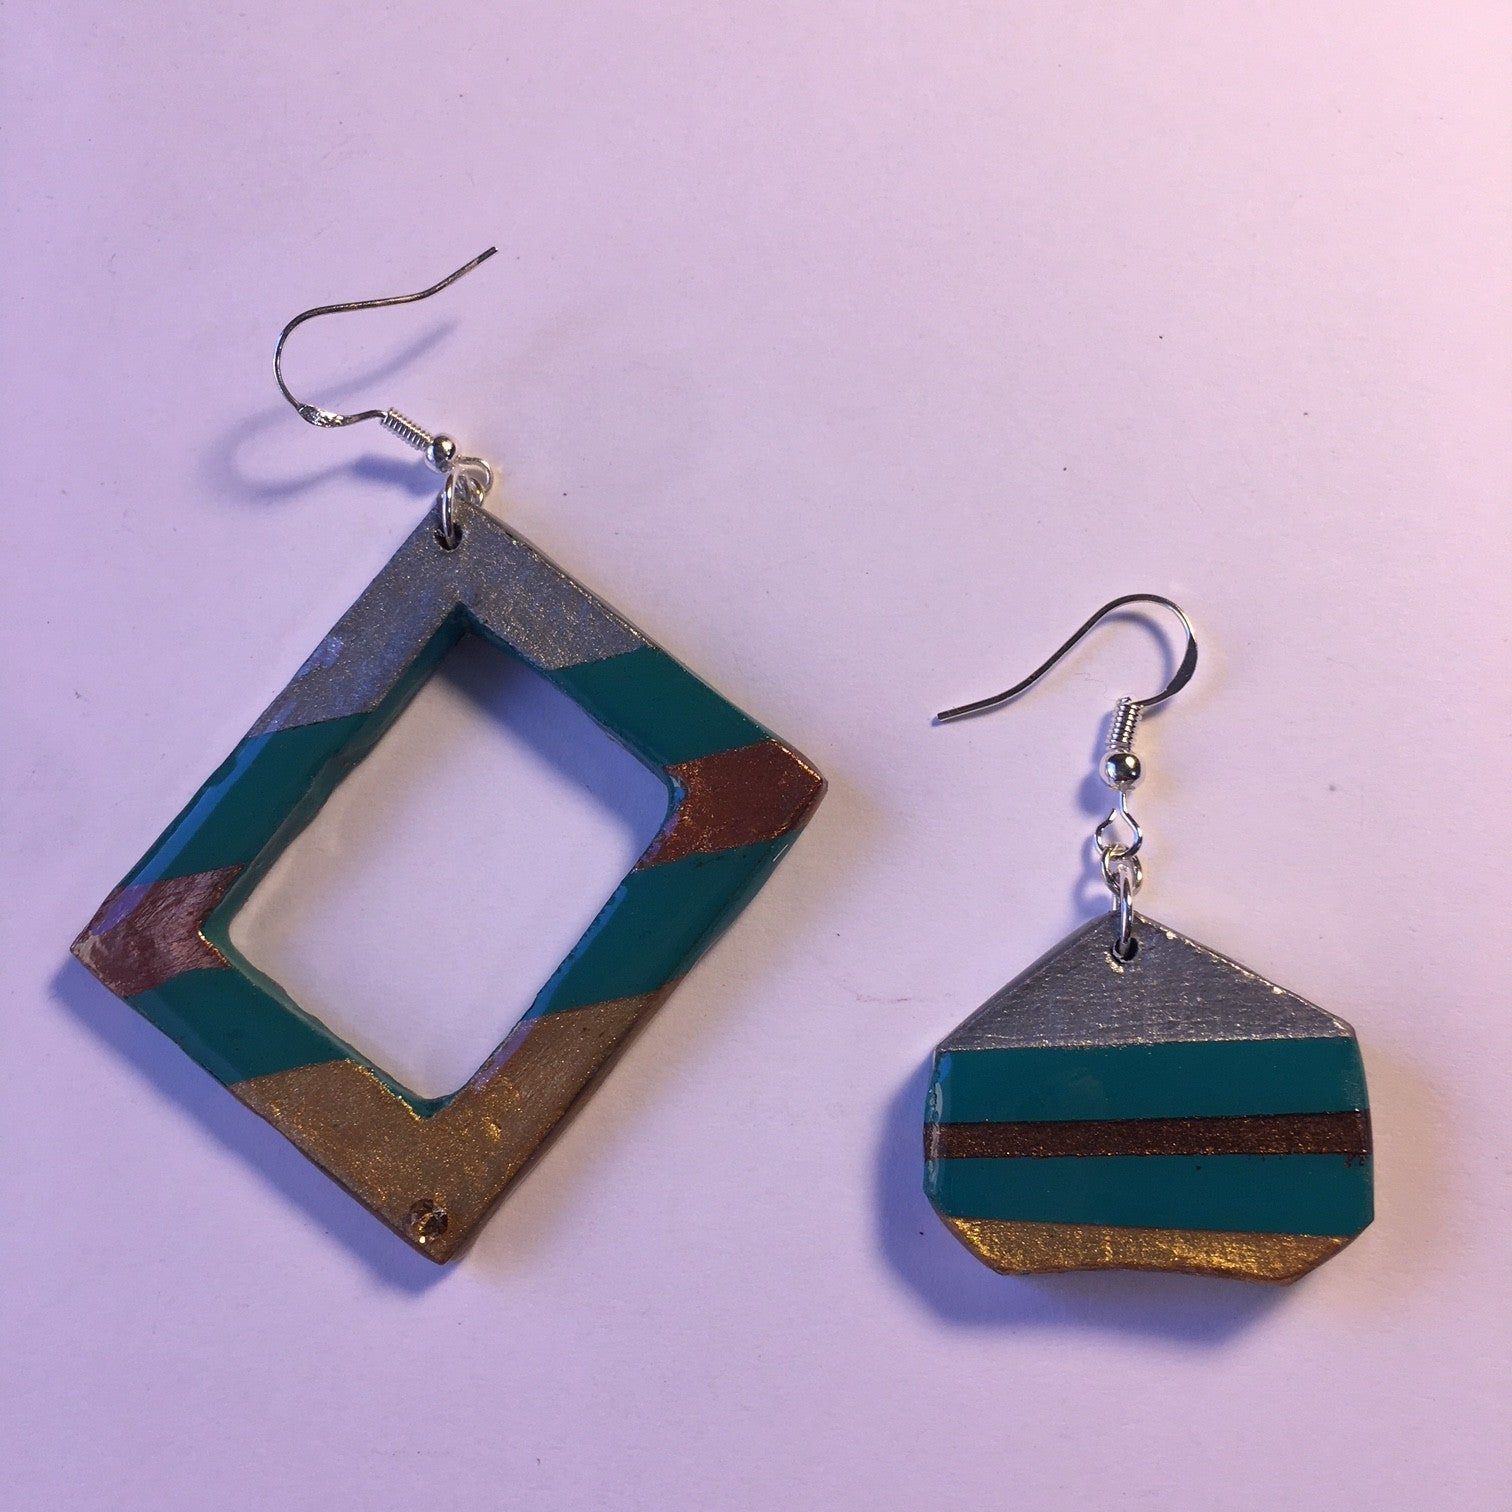 square and shape different earrings gold, silver, bronze, green